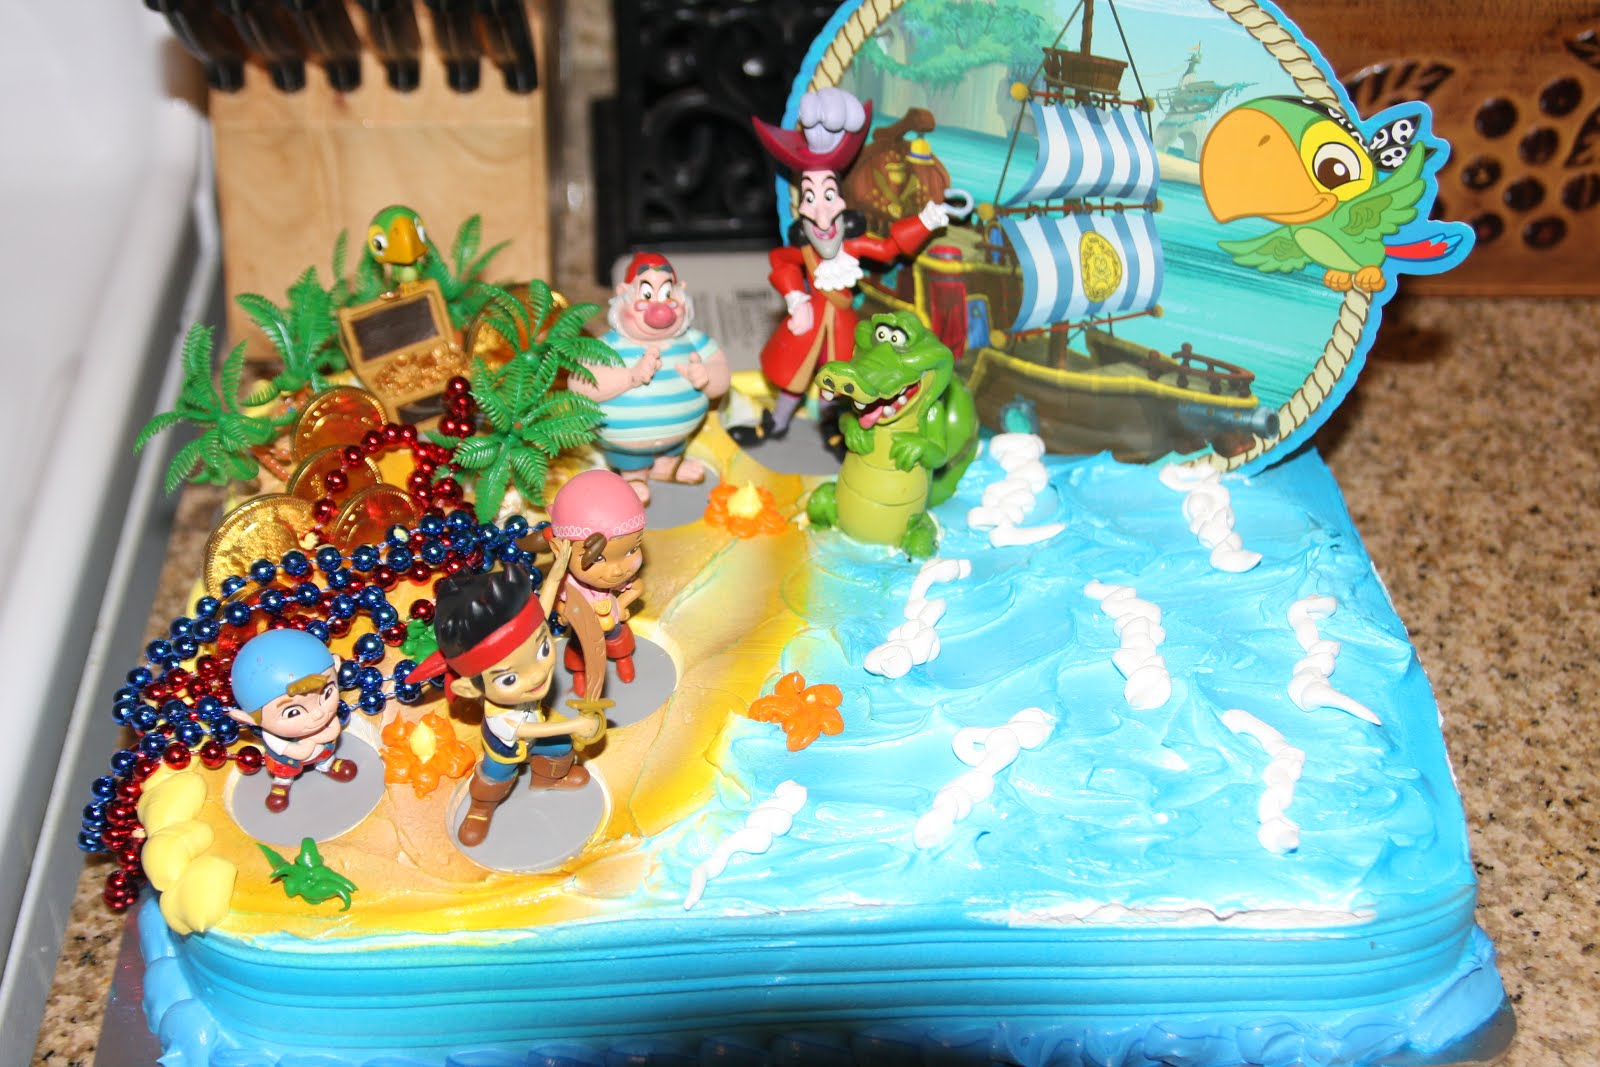 Jake and the neverland pirates bedroom decor